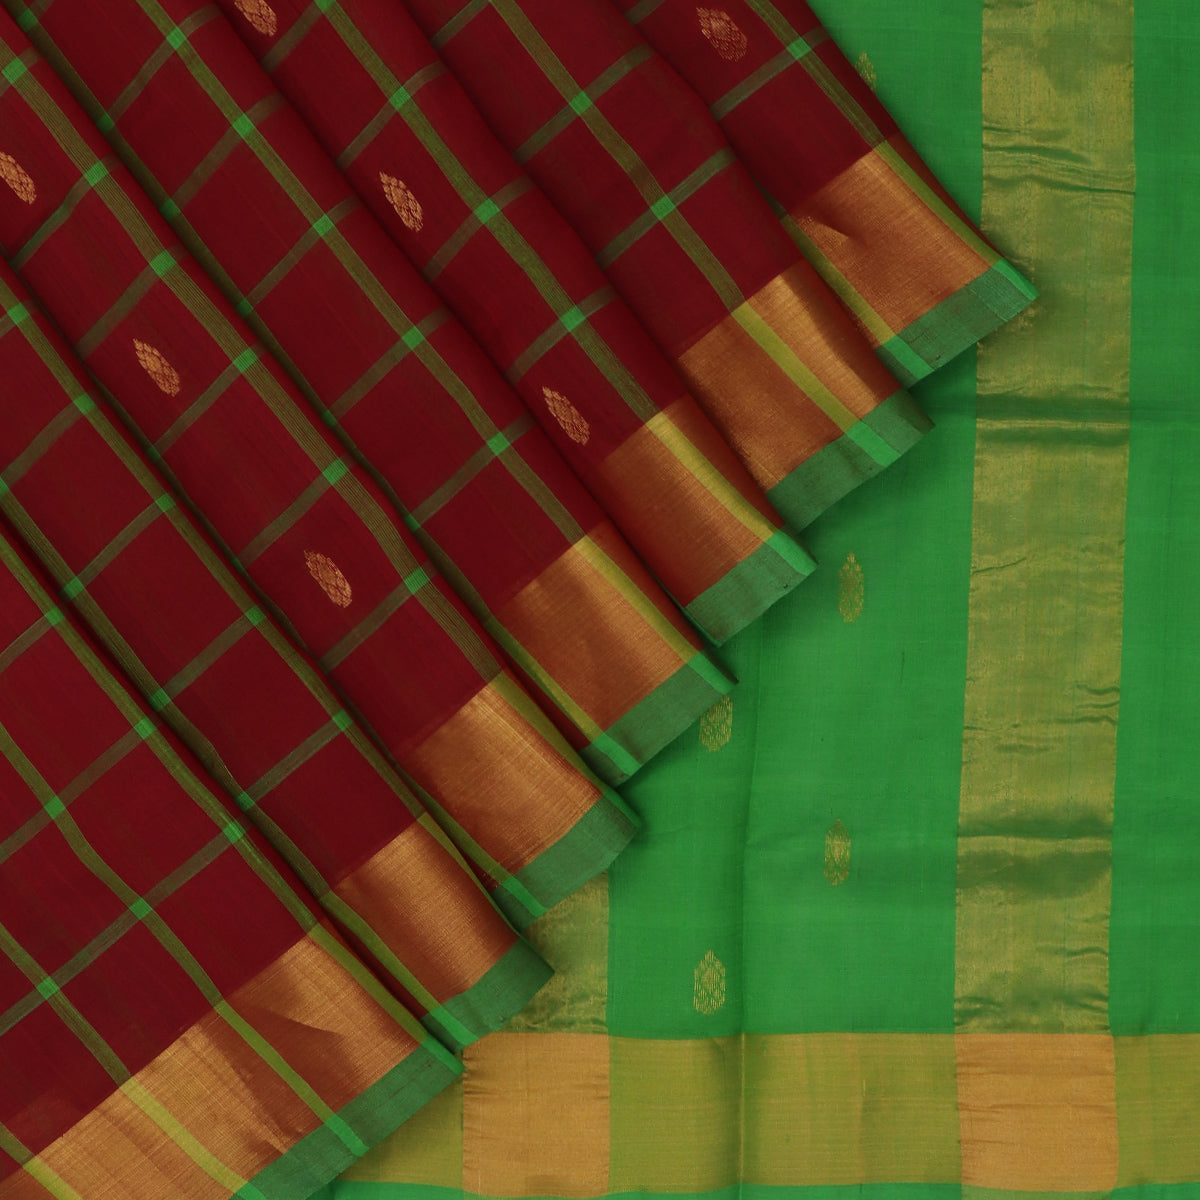 Silk Cotton Saree-Maroon and Parrot Green Checks with Butta and zari border